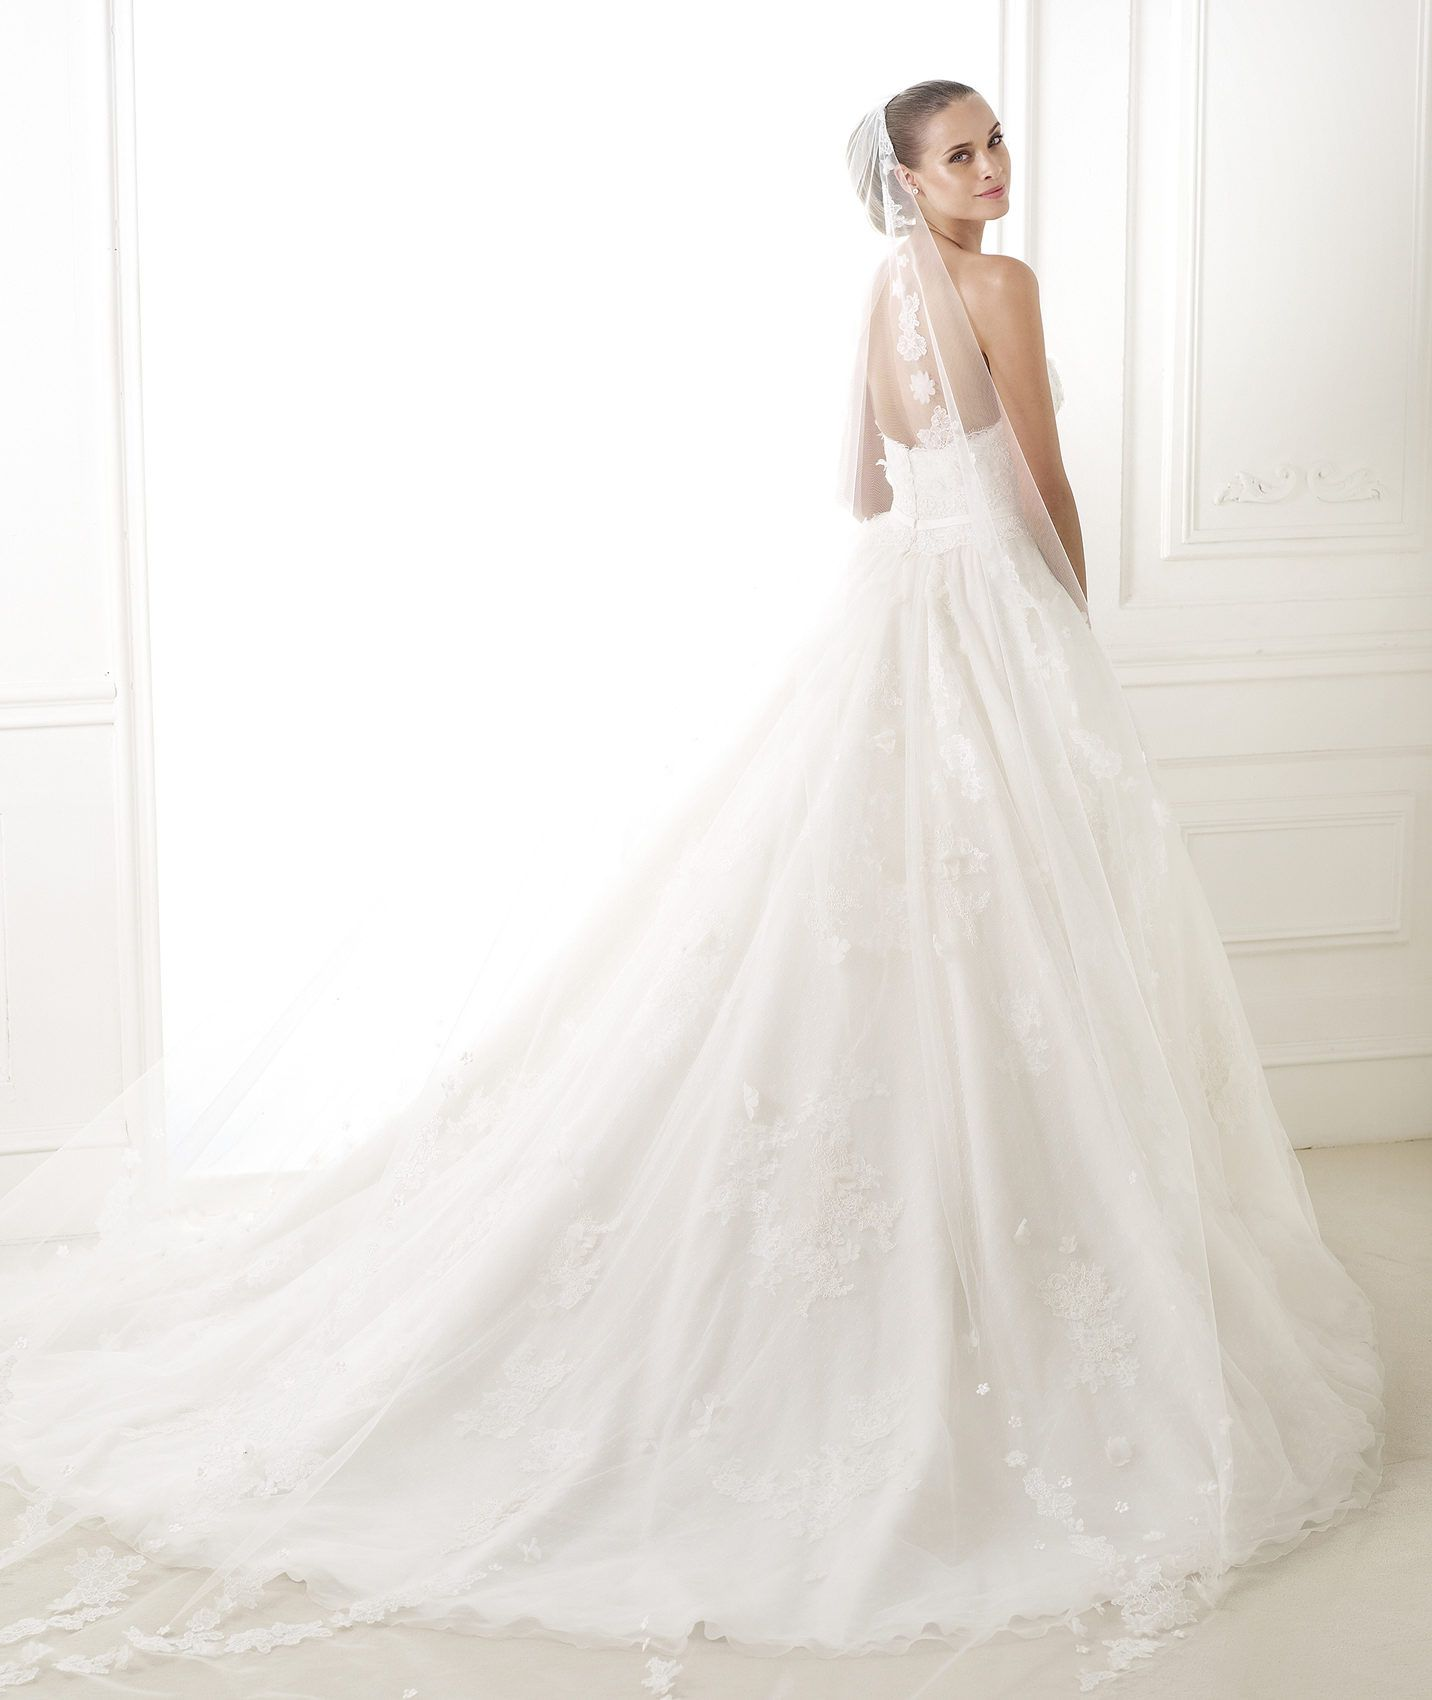 Espectacular 2015Wedding Pronovias De Corte Vestido Princesa hdQxCtsrBo